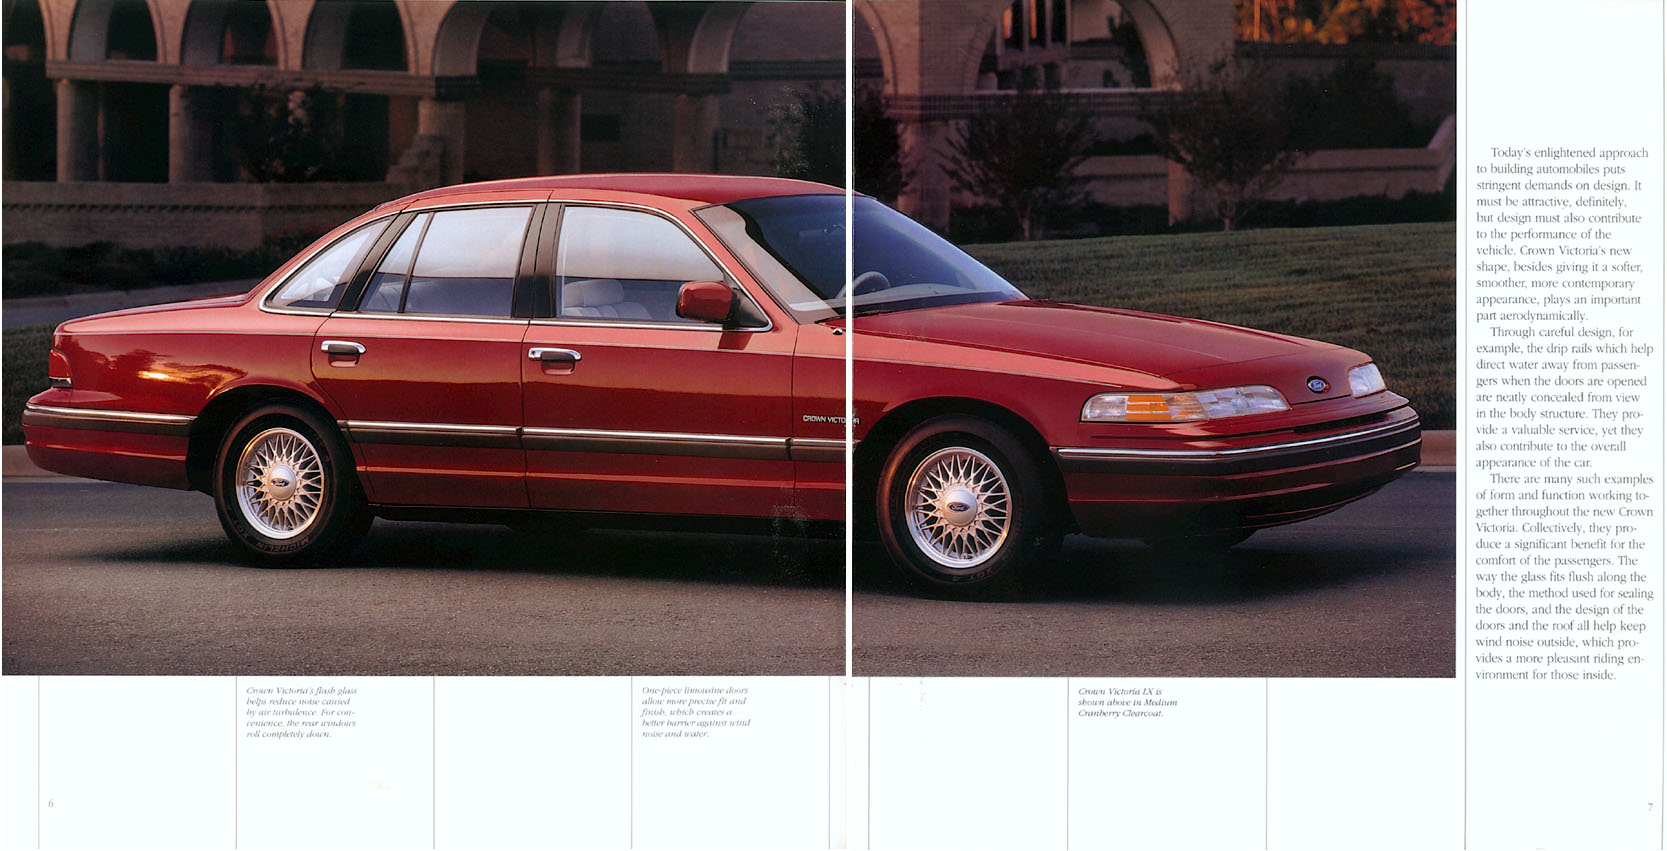 92vic 5 besides Page 3232 as well Wallpaper 19 together with Wallpaper 13 besides 92vic 1. on ford crown victoria